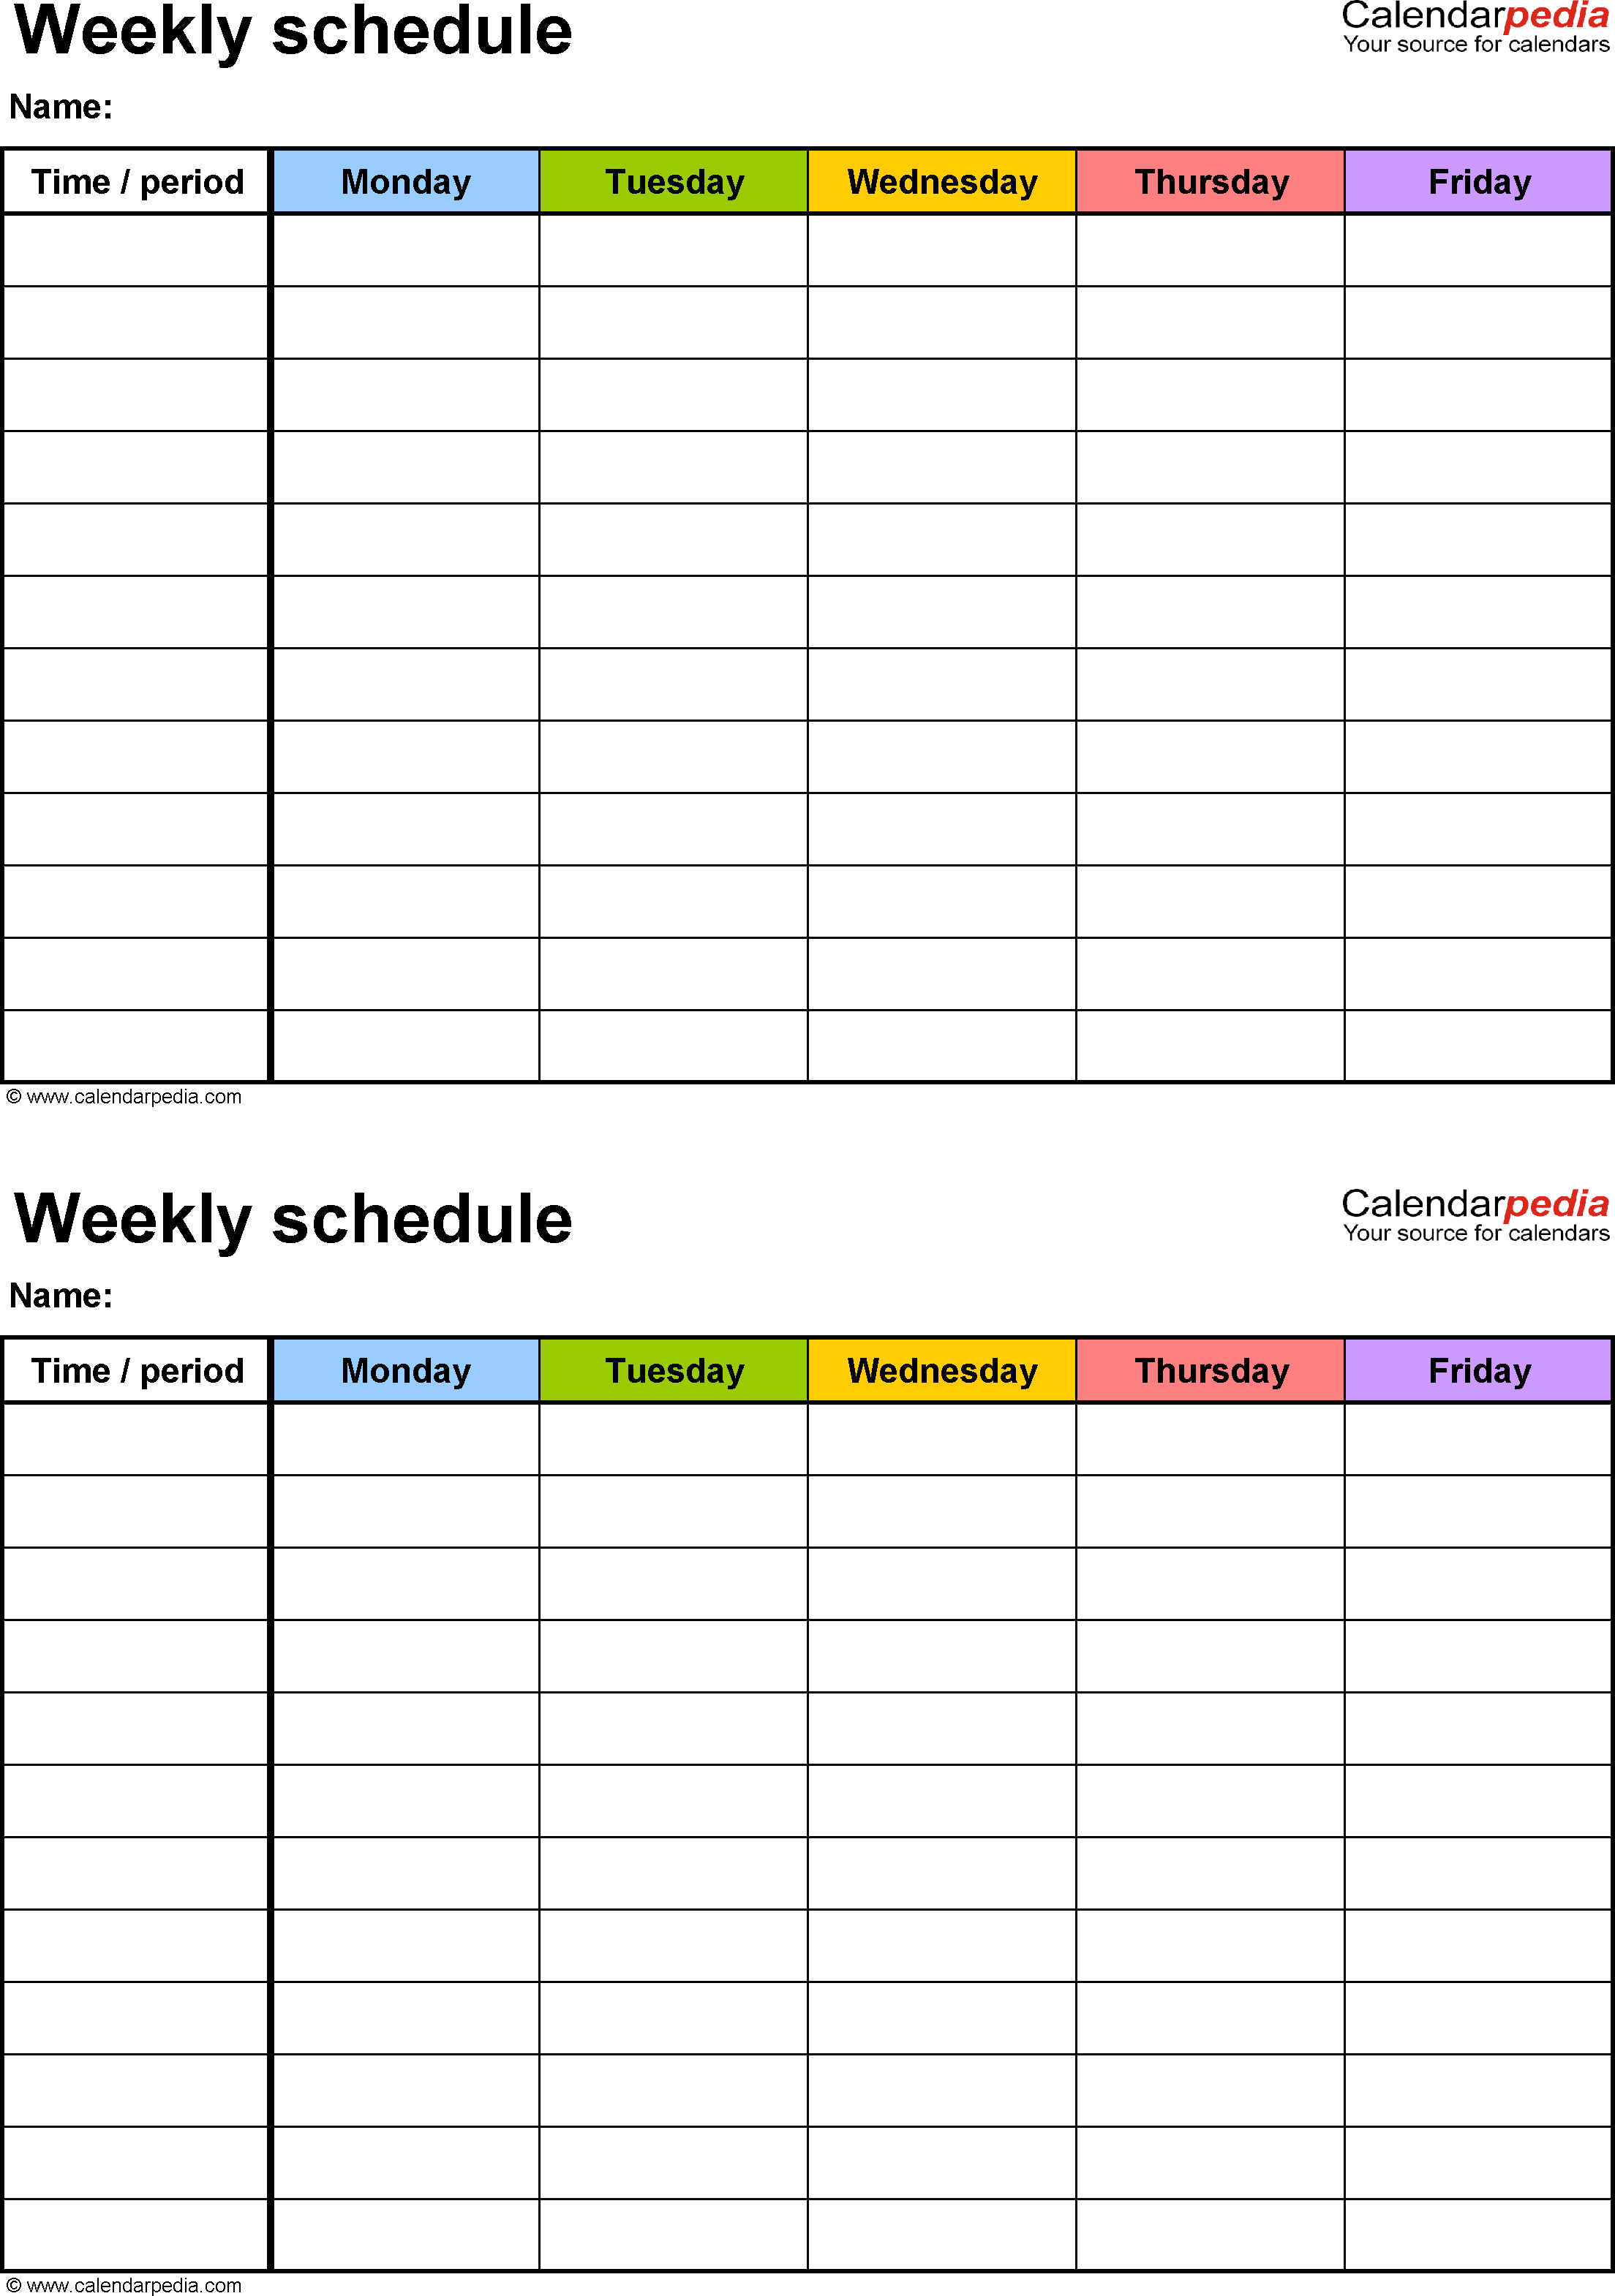 Free Weekly Schedule Templates For Excel - 18 Templates inside Free Printable Template For Day Of The Week Schedule